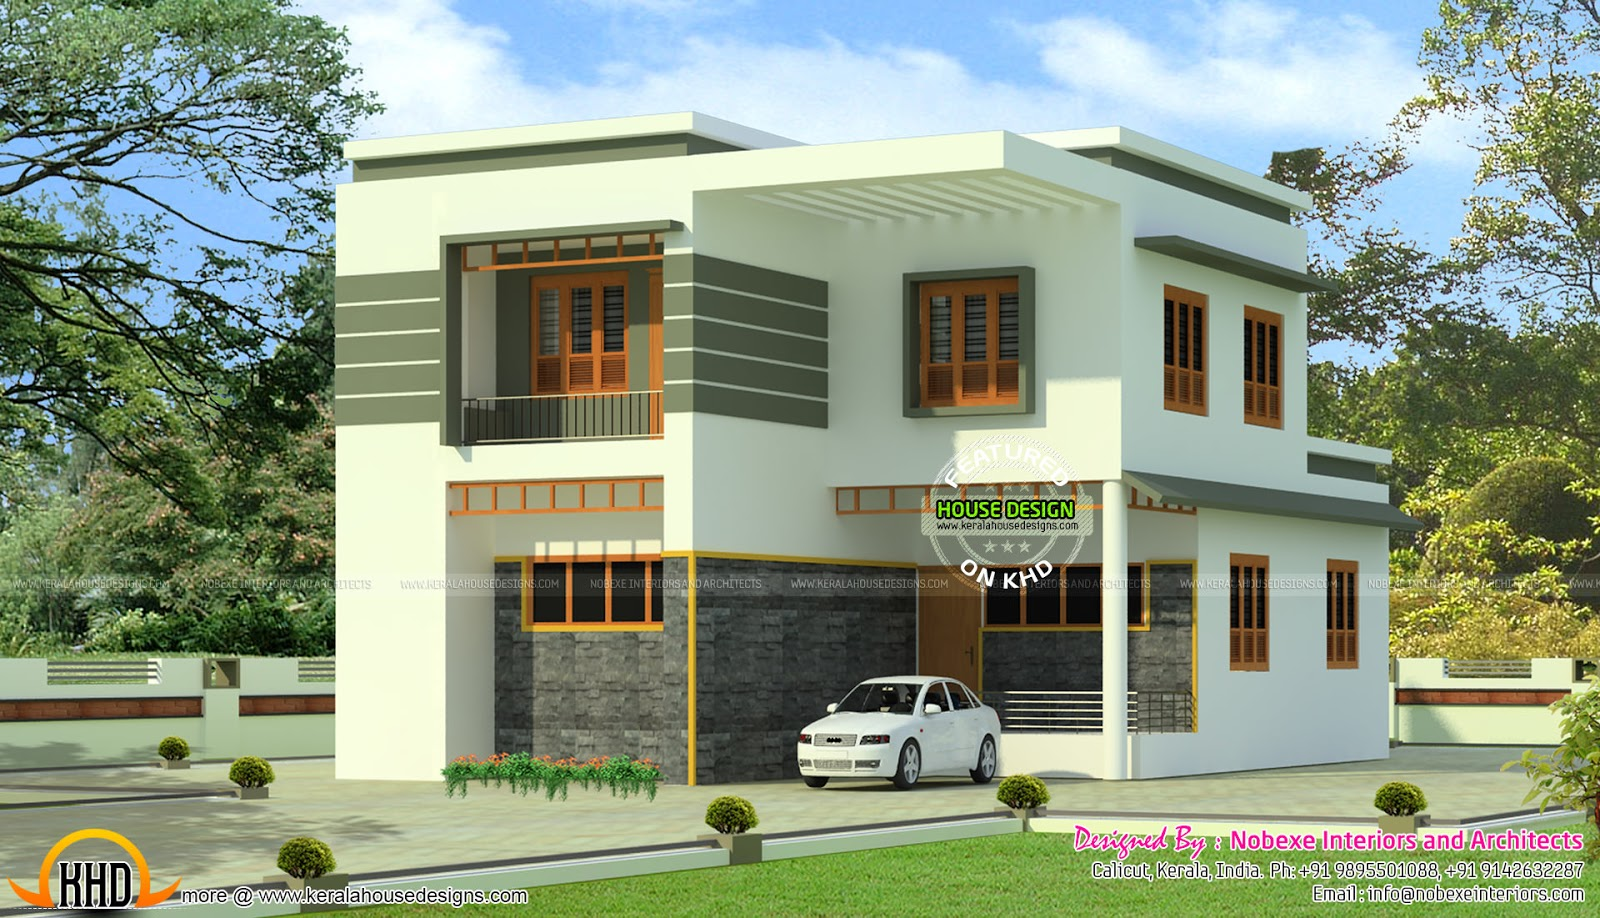 4 bhk modern flat roof home in 2160 sq ft kerala home design and floor plans Home architecture blogs